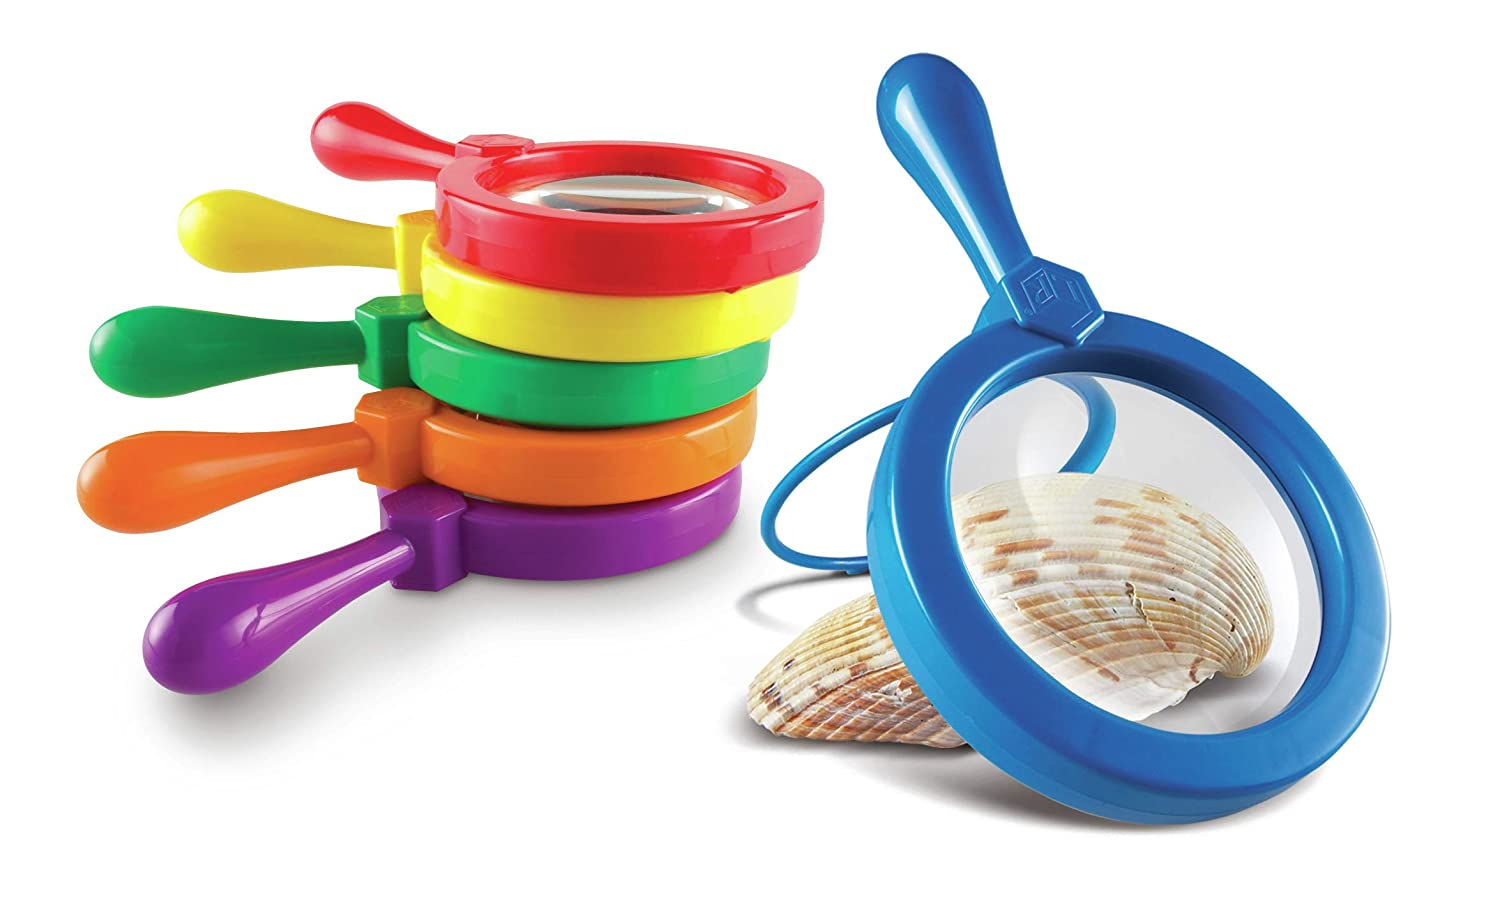 Top 9 Best Kids Magnifying Glass Reviews in 2020 1